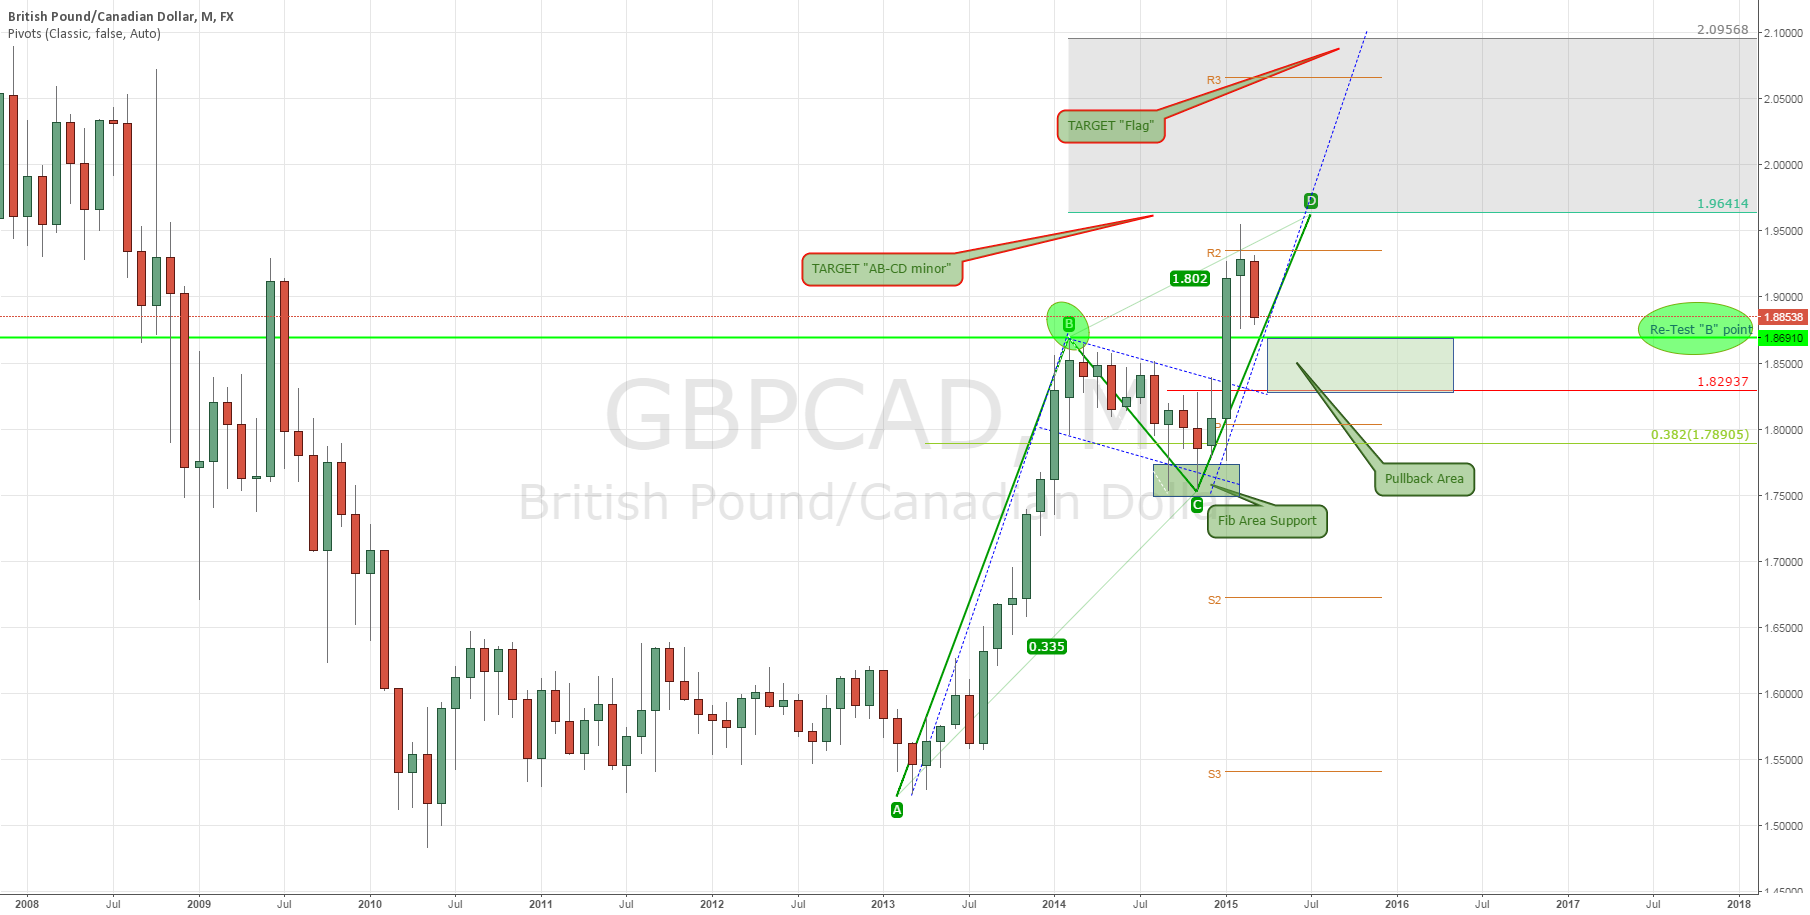 GBP/CAD: Trading Strategy (Part 1)